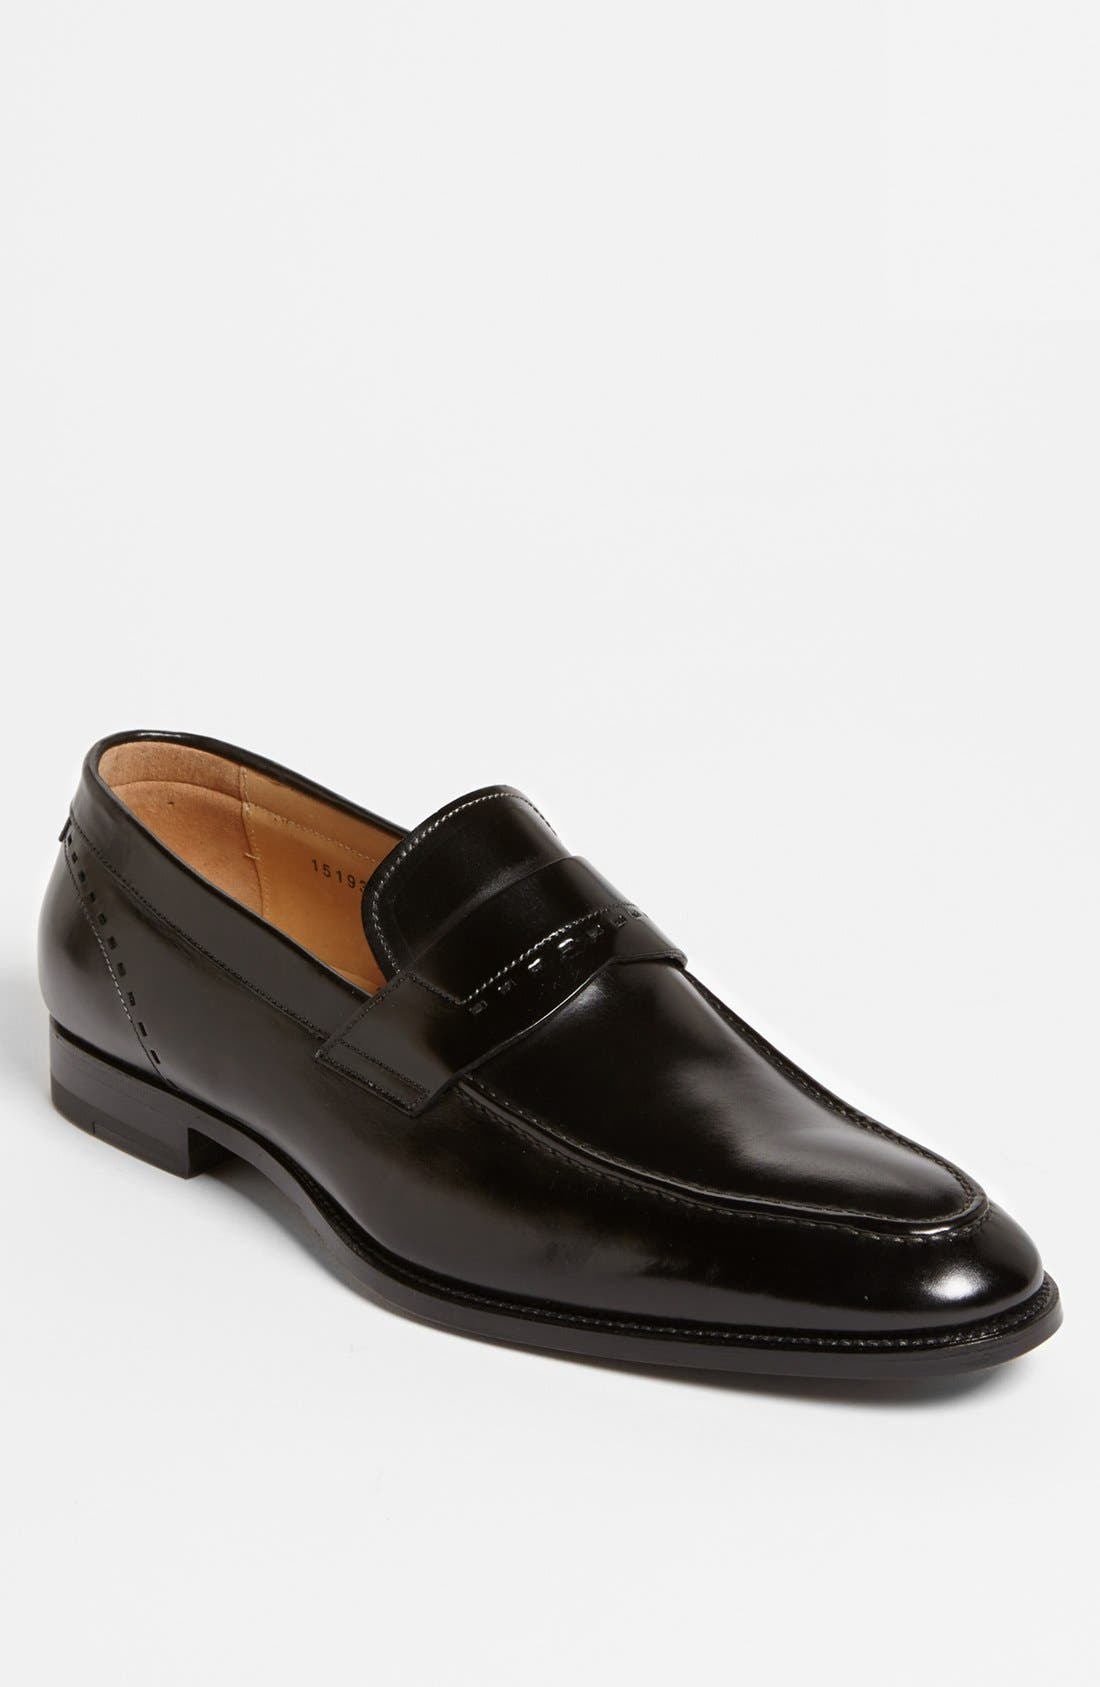 Alternate Image 1 Selected - Santoni 'Piermont' Loafer